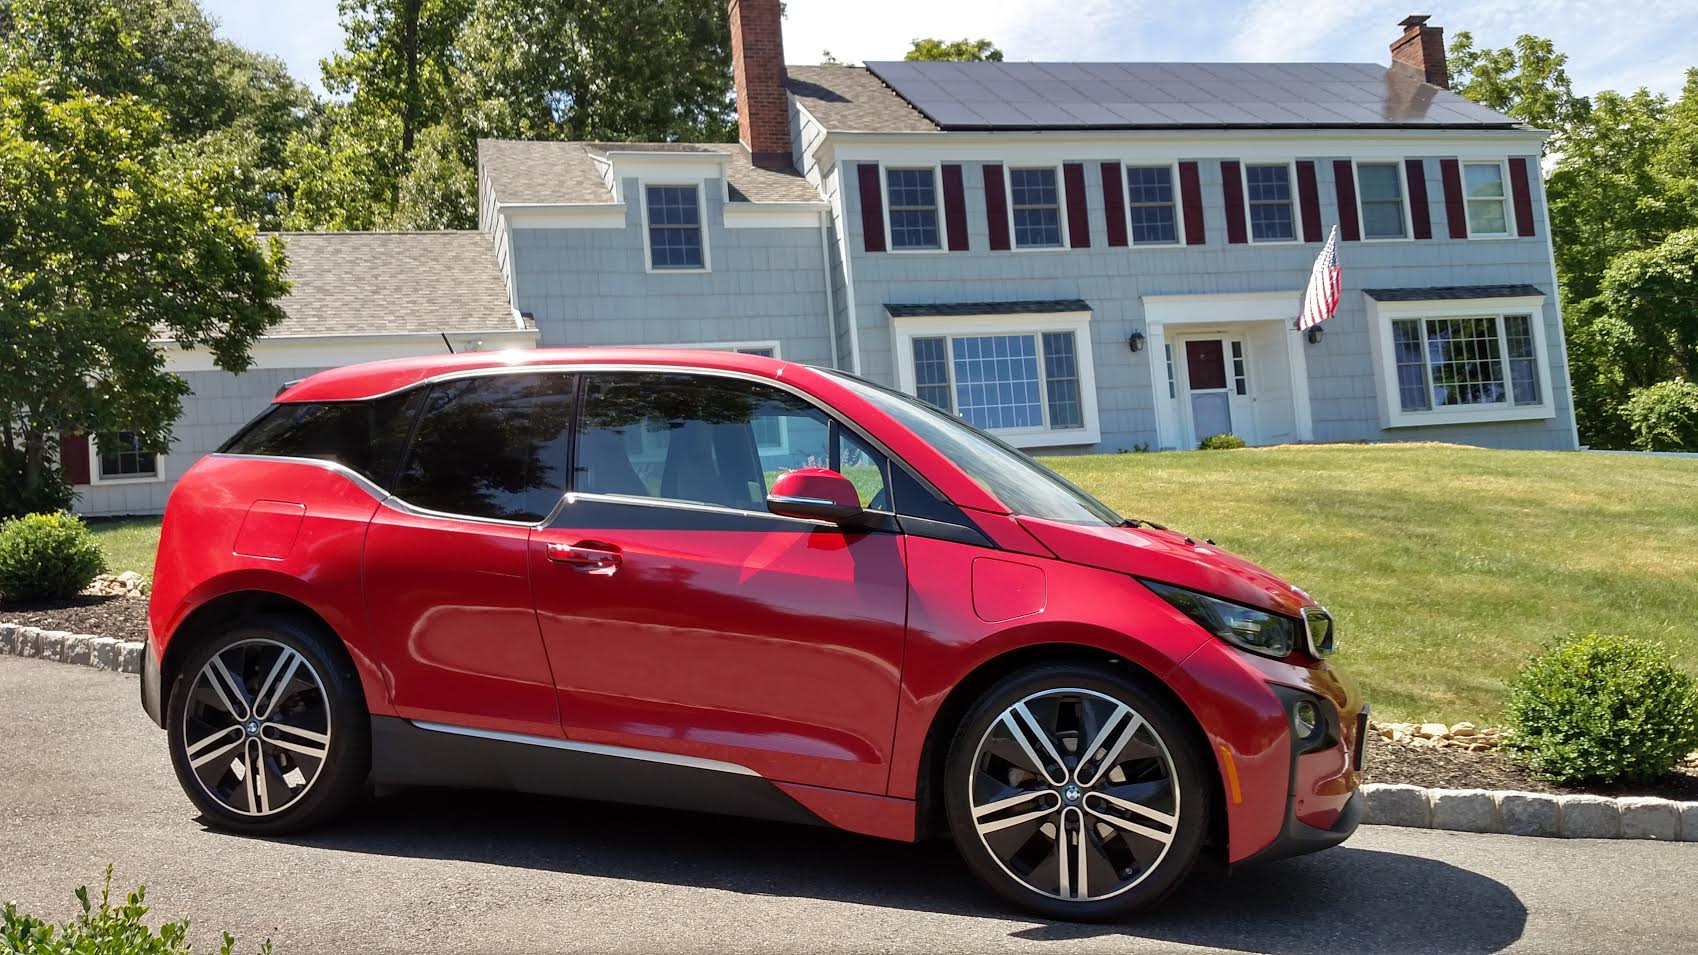 review: bmw i3 reaches 56,000 miles